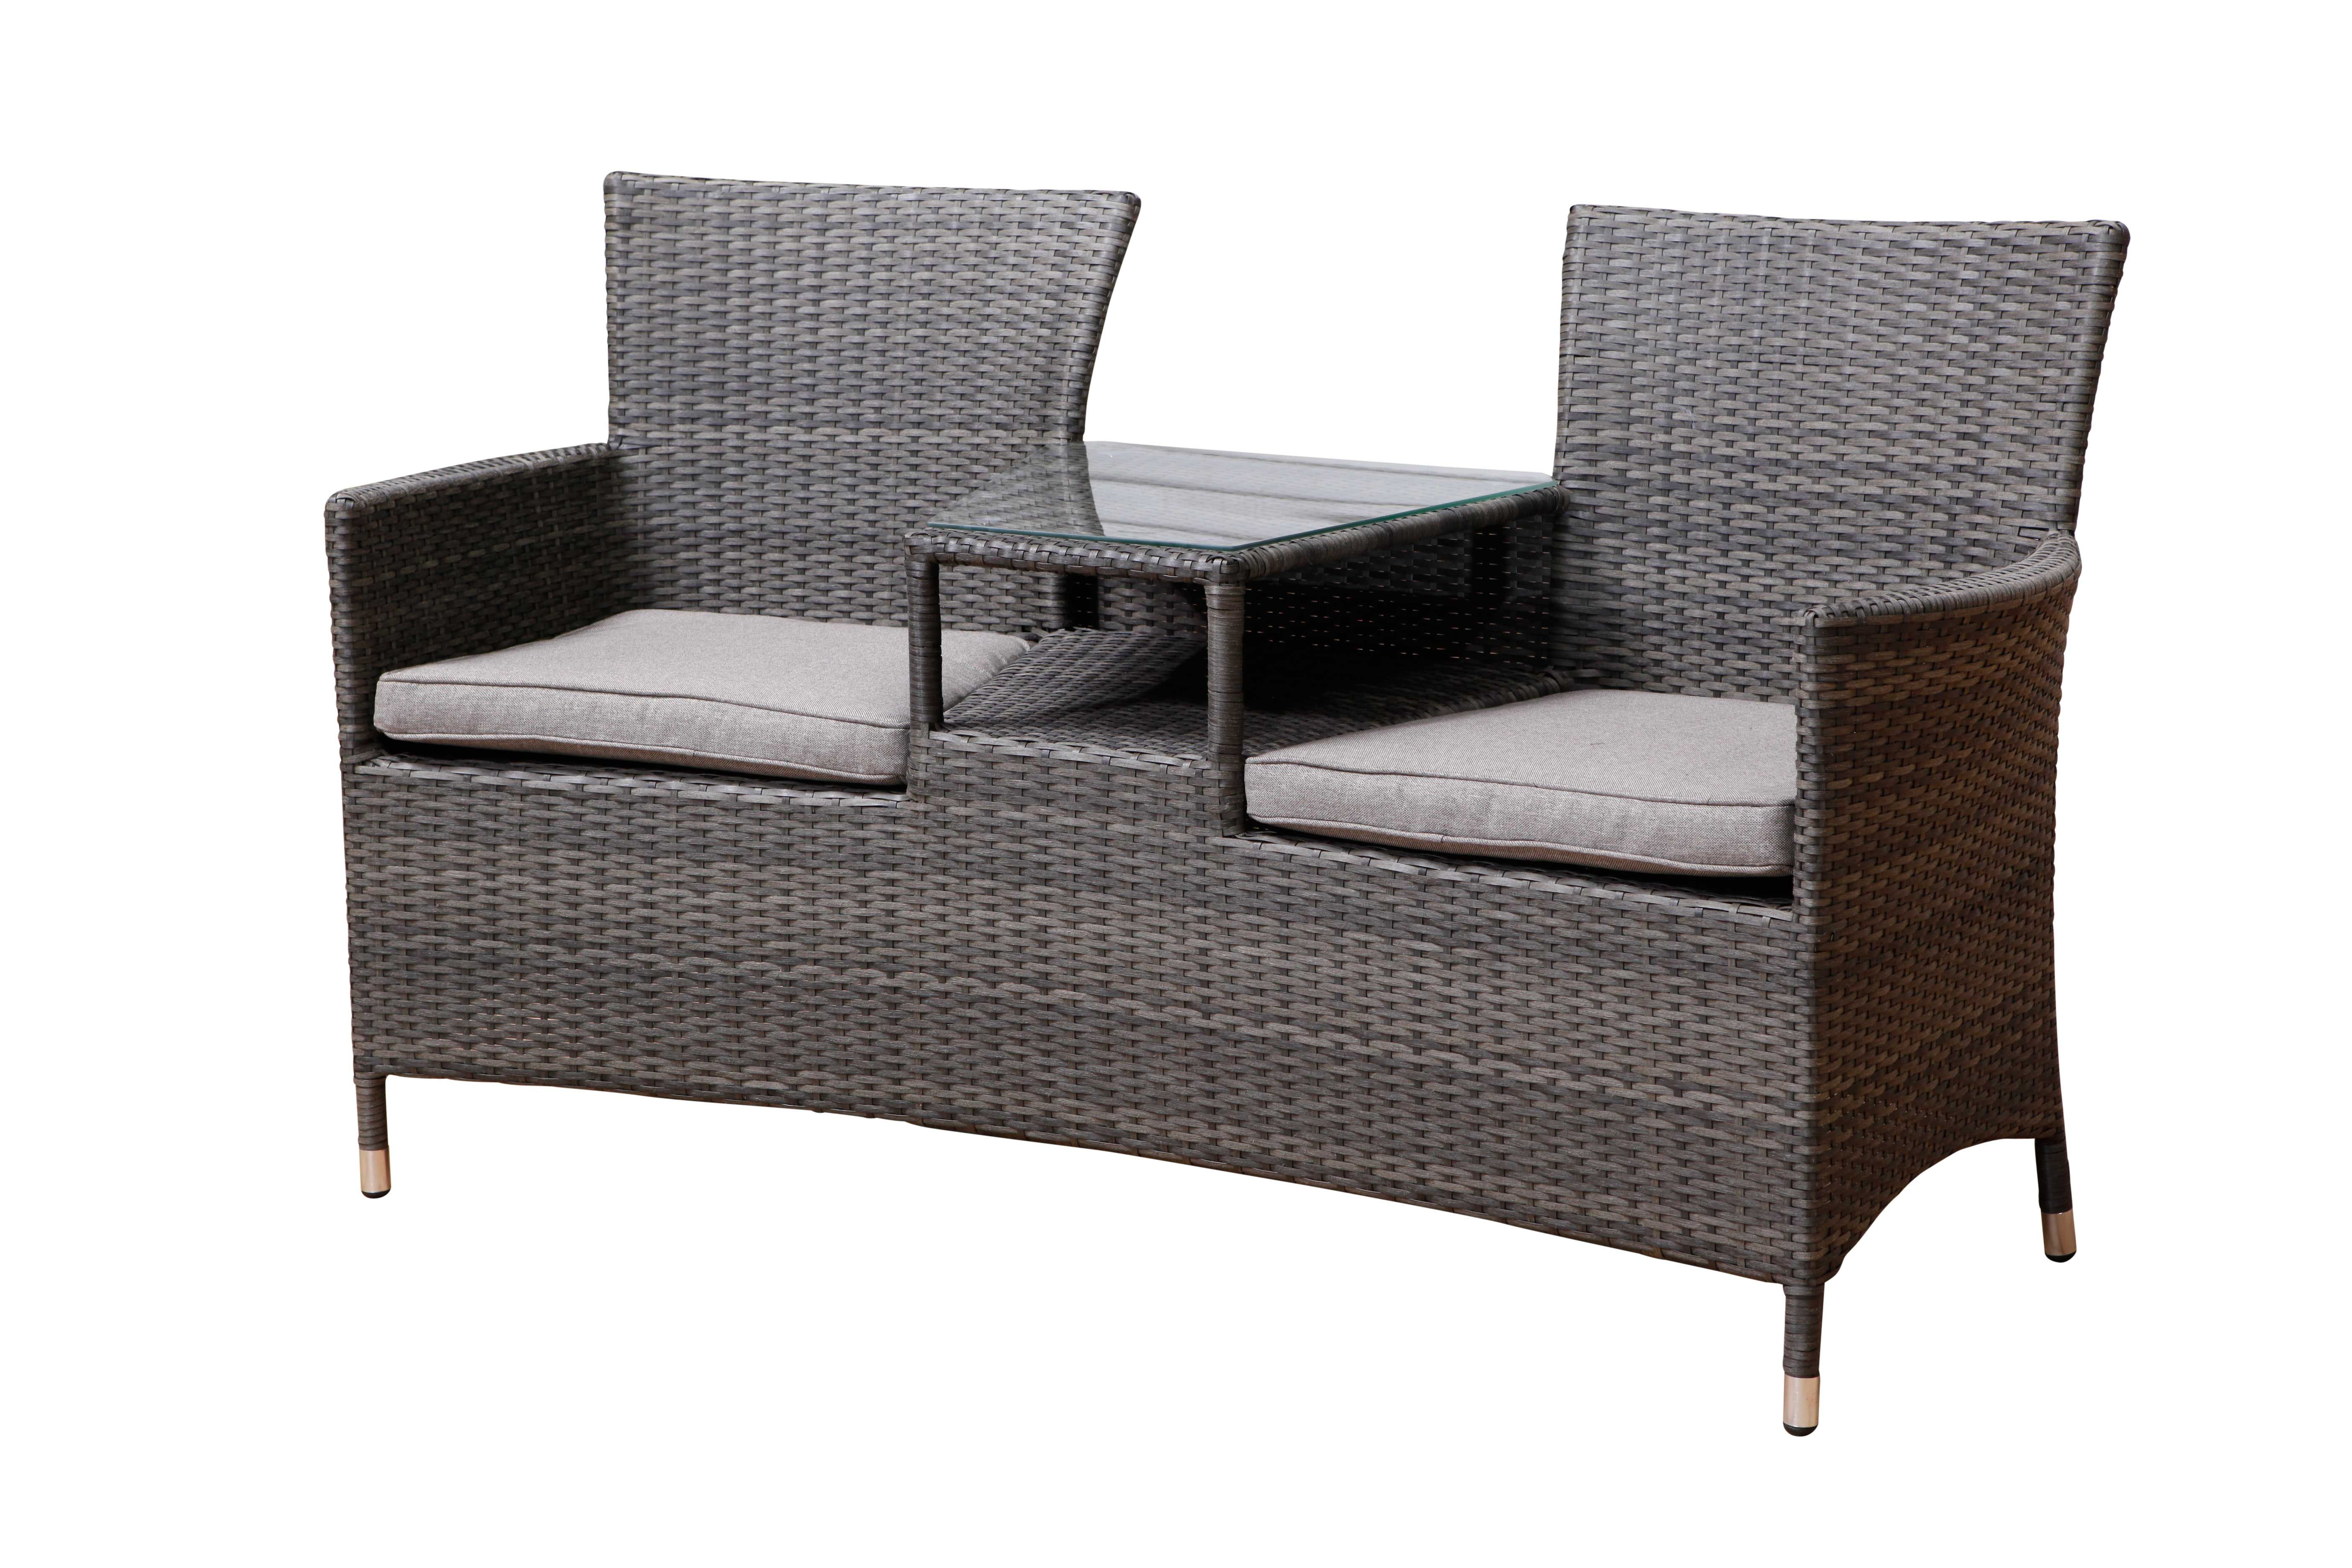 sofas western australia sofa cleaning pune kothrud jack and jill outdoor seat available at drovers inside